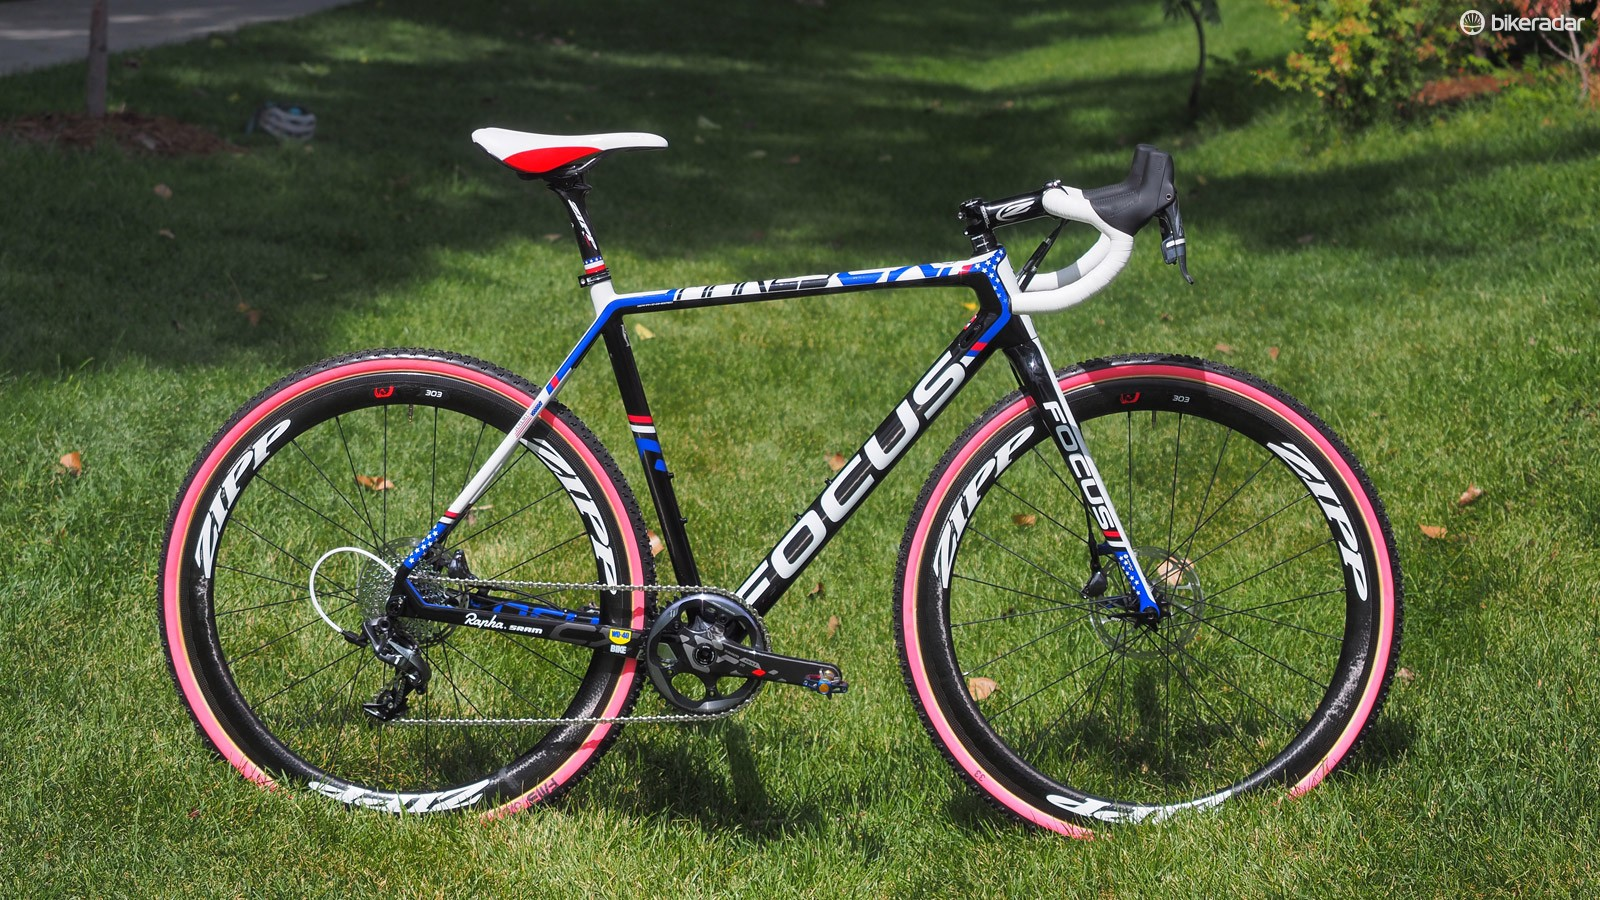 Jeremy Powers (Aspire Racing) has a fleet of red-white-and-blue Focus Mares CX carbon 'cross racers to celebrate his status as the current US national champion